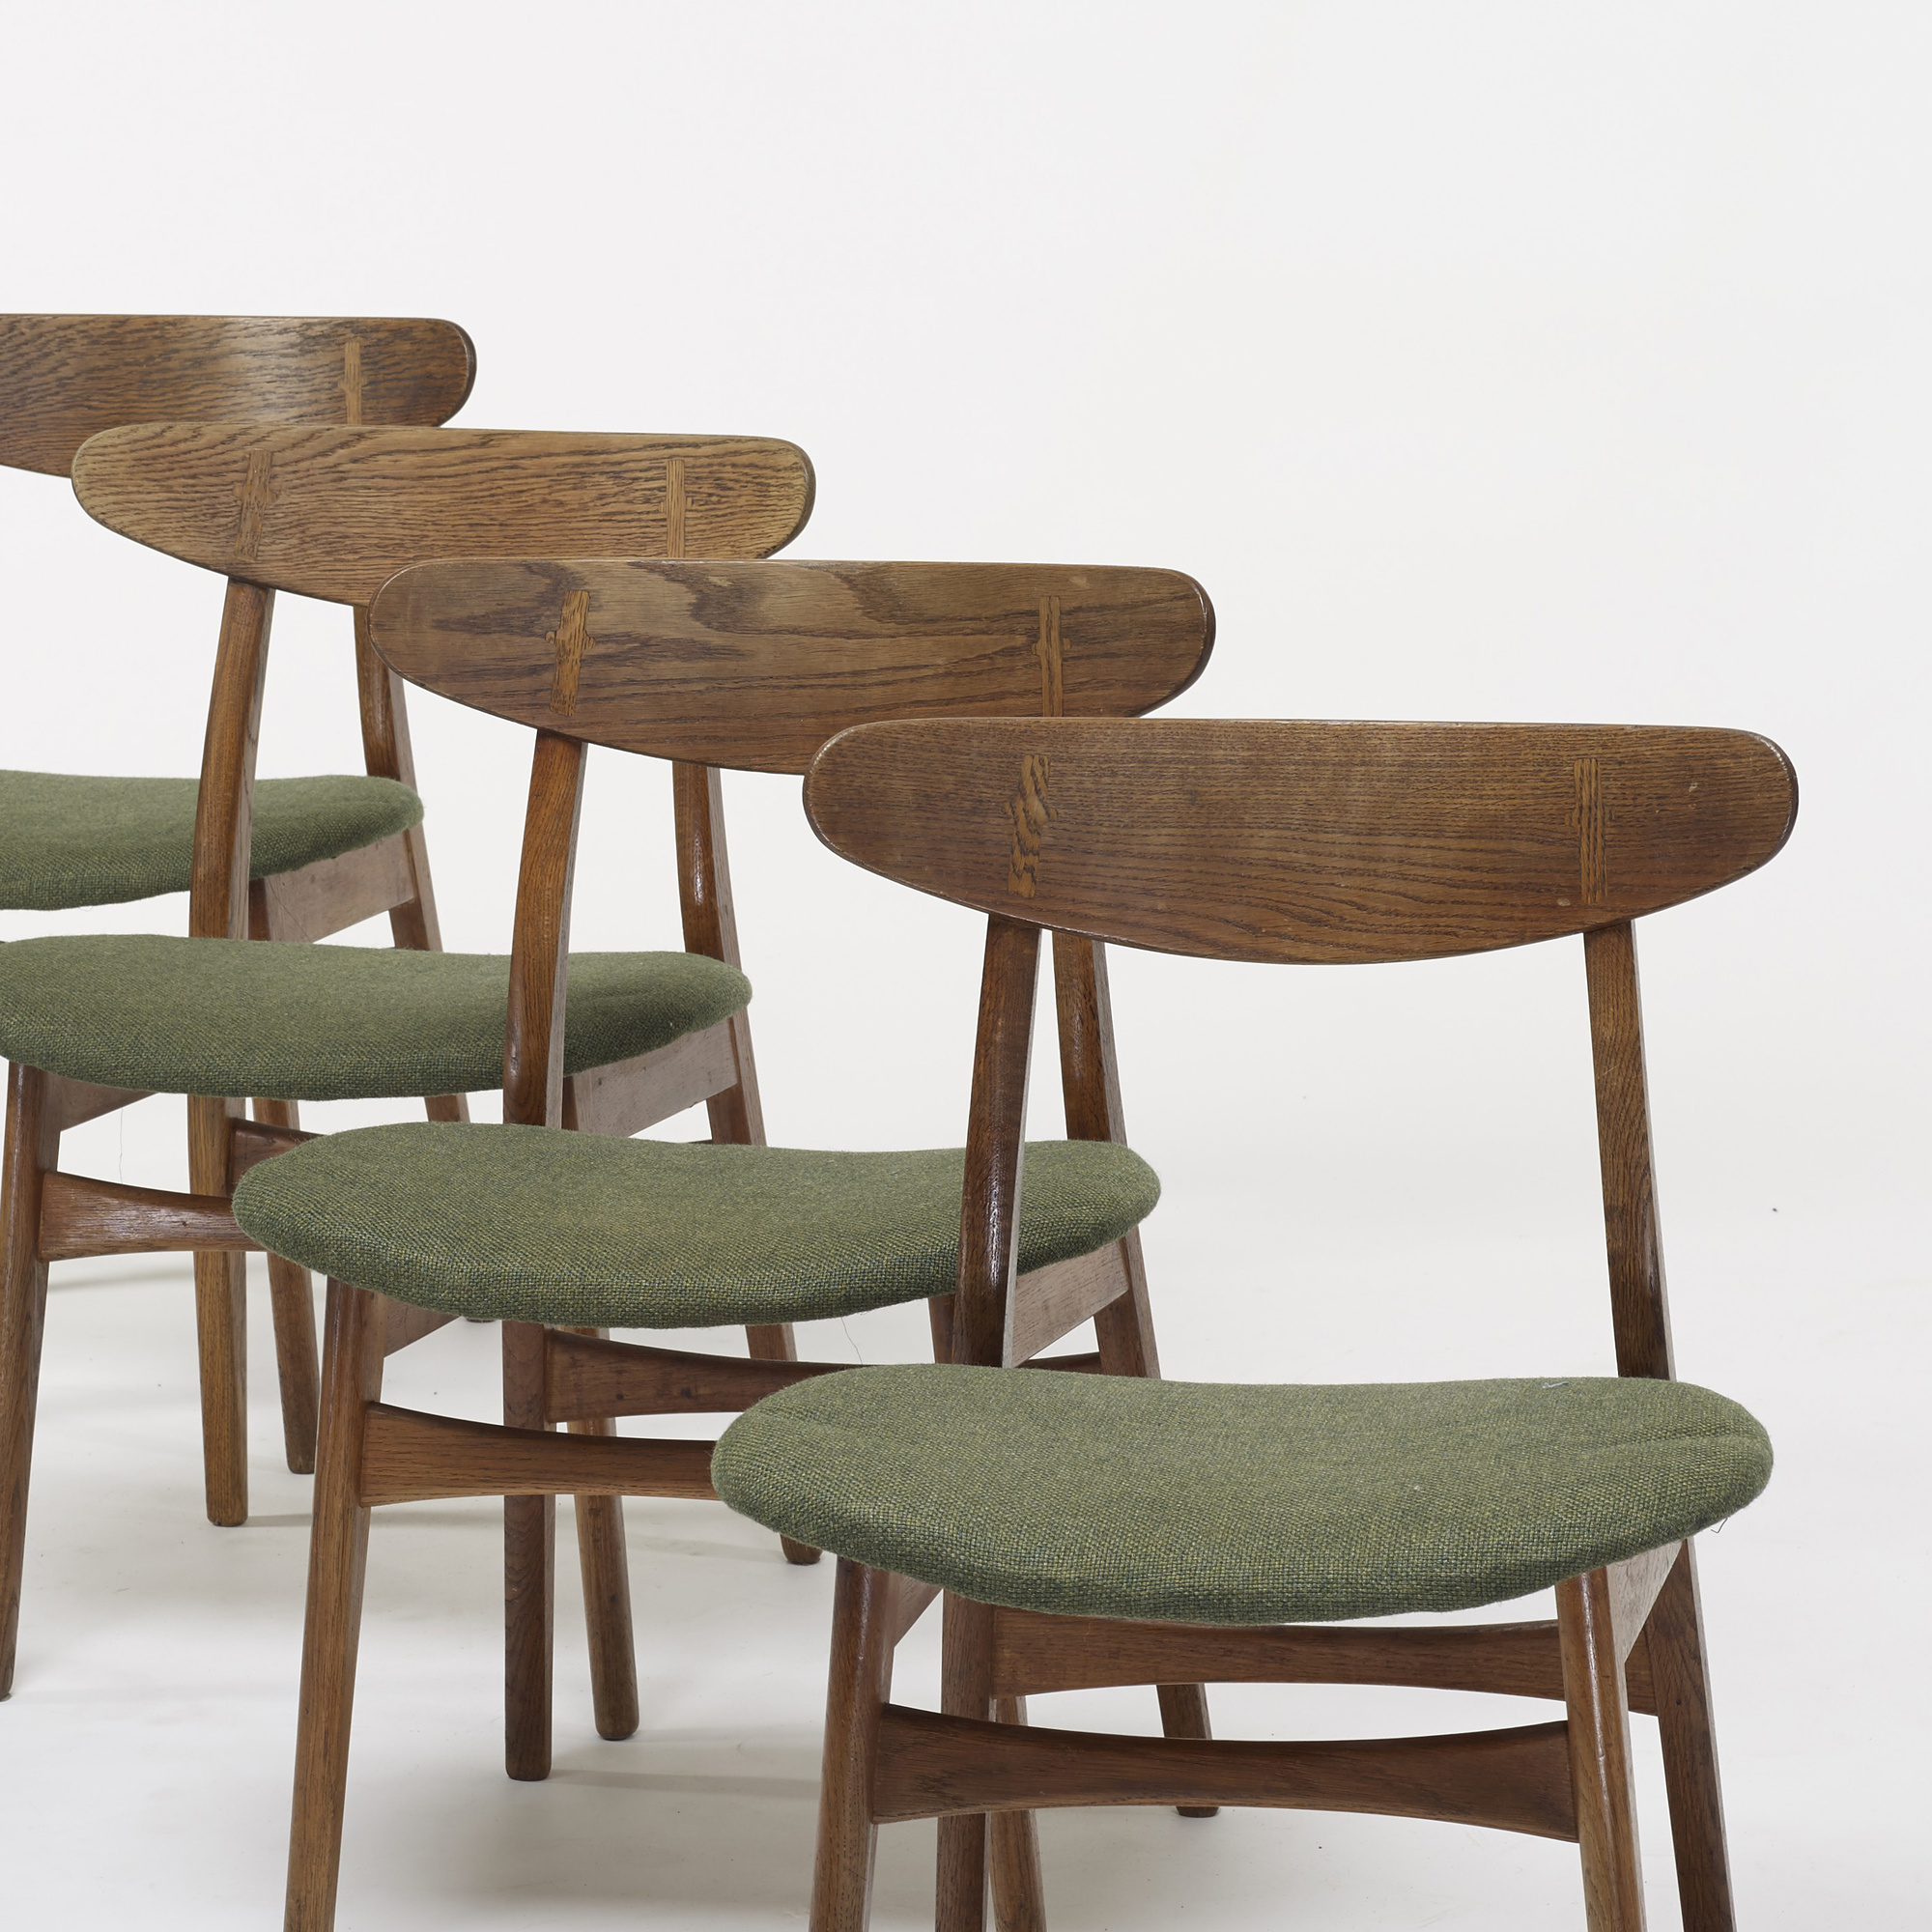 743 HANS J WEGNER, dining chairs model CH 30, set of four